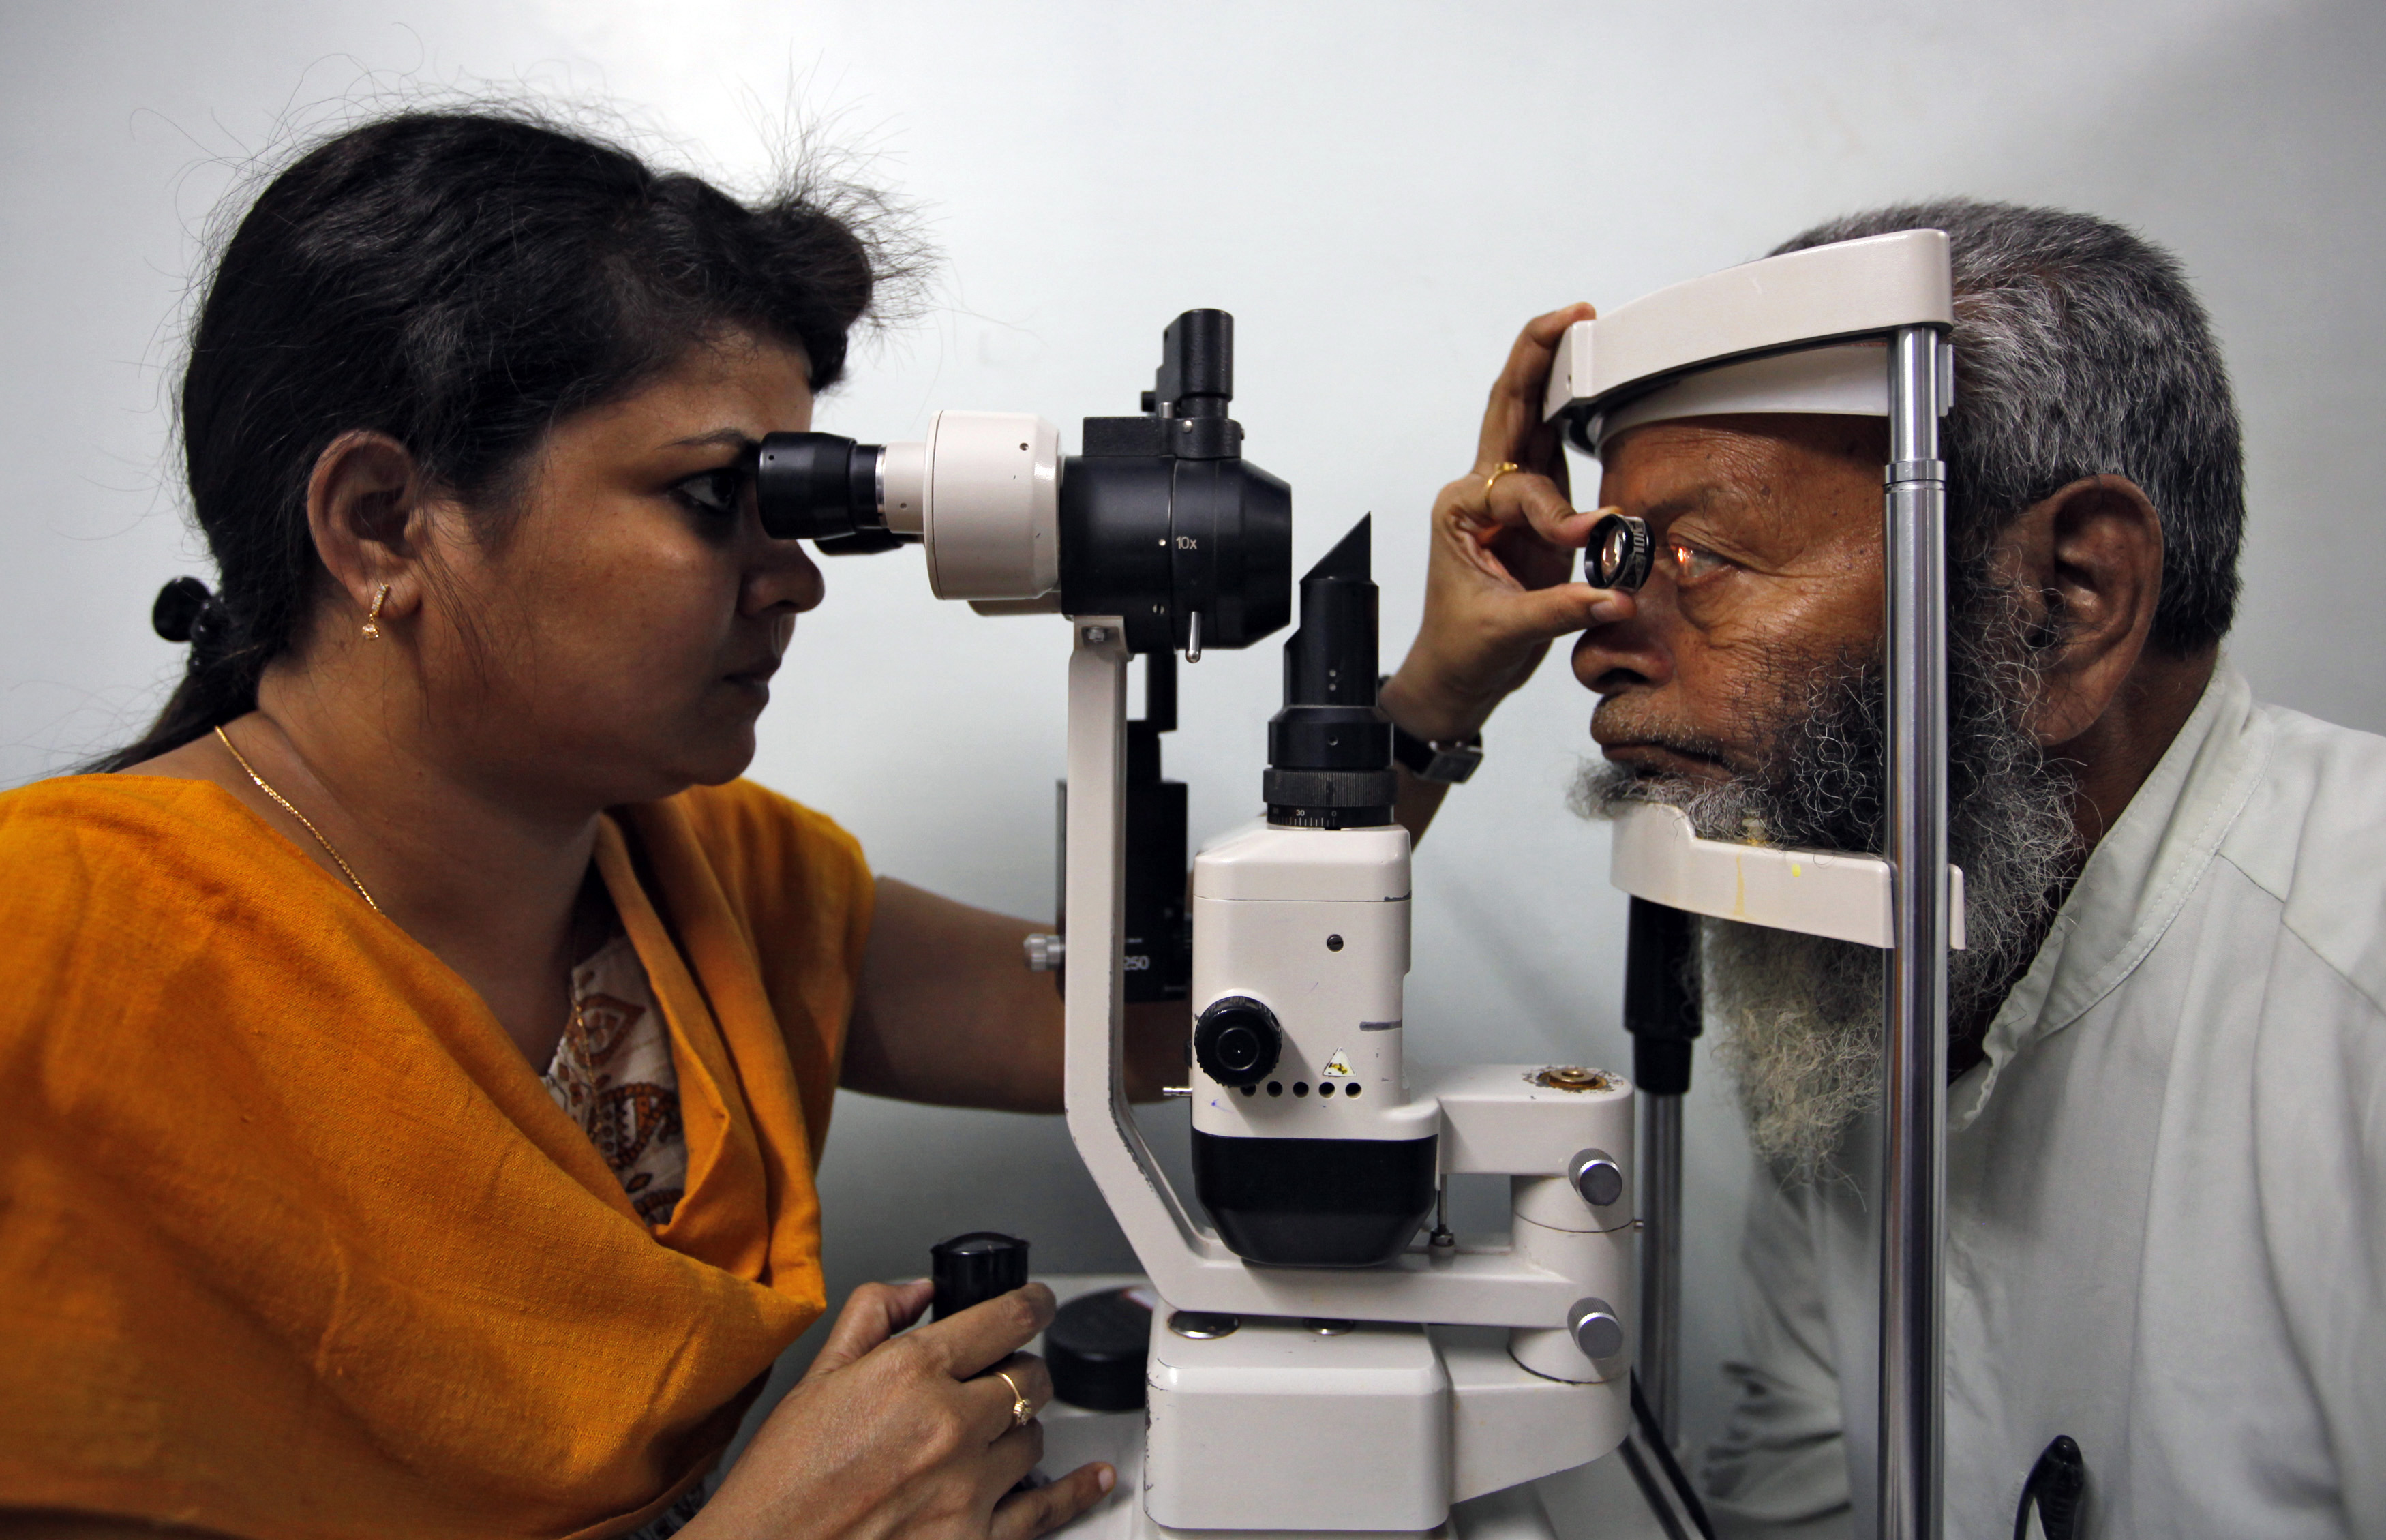 A villager undergoes an eye examination at a camp organised by Aravind Eye Care System in a village outside Madurai, in India's Tamil Nadu state March 3, 2010 to screen for eye problems which will then be treated at one of their hospitals. From a rented house with 11 beds in 1976, Aravind, whose mission is to eliminate needless blindness, has grown into a network of hospitals and clinics that provides eye examinations, surgery by keeping its costs extremely low and by subsidizing care for poor people through fees for paying customers and the sale of eye-care products. Picture taken March 3, 2010.  REUTERS/Reinhard Krause (INDIA - Tags: HEALTH SOCIETY) - RTR2B9T5